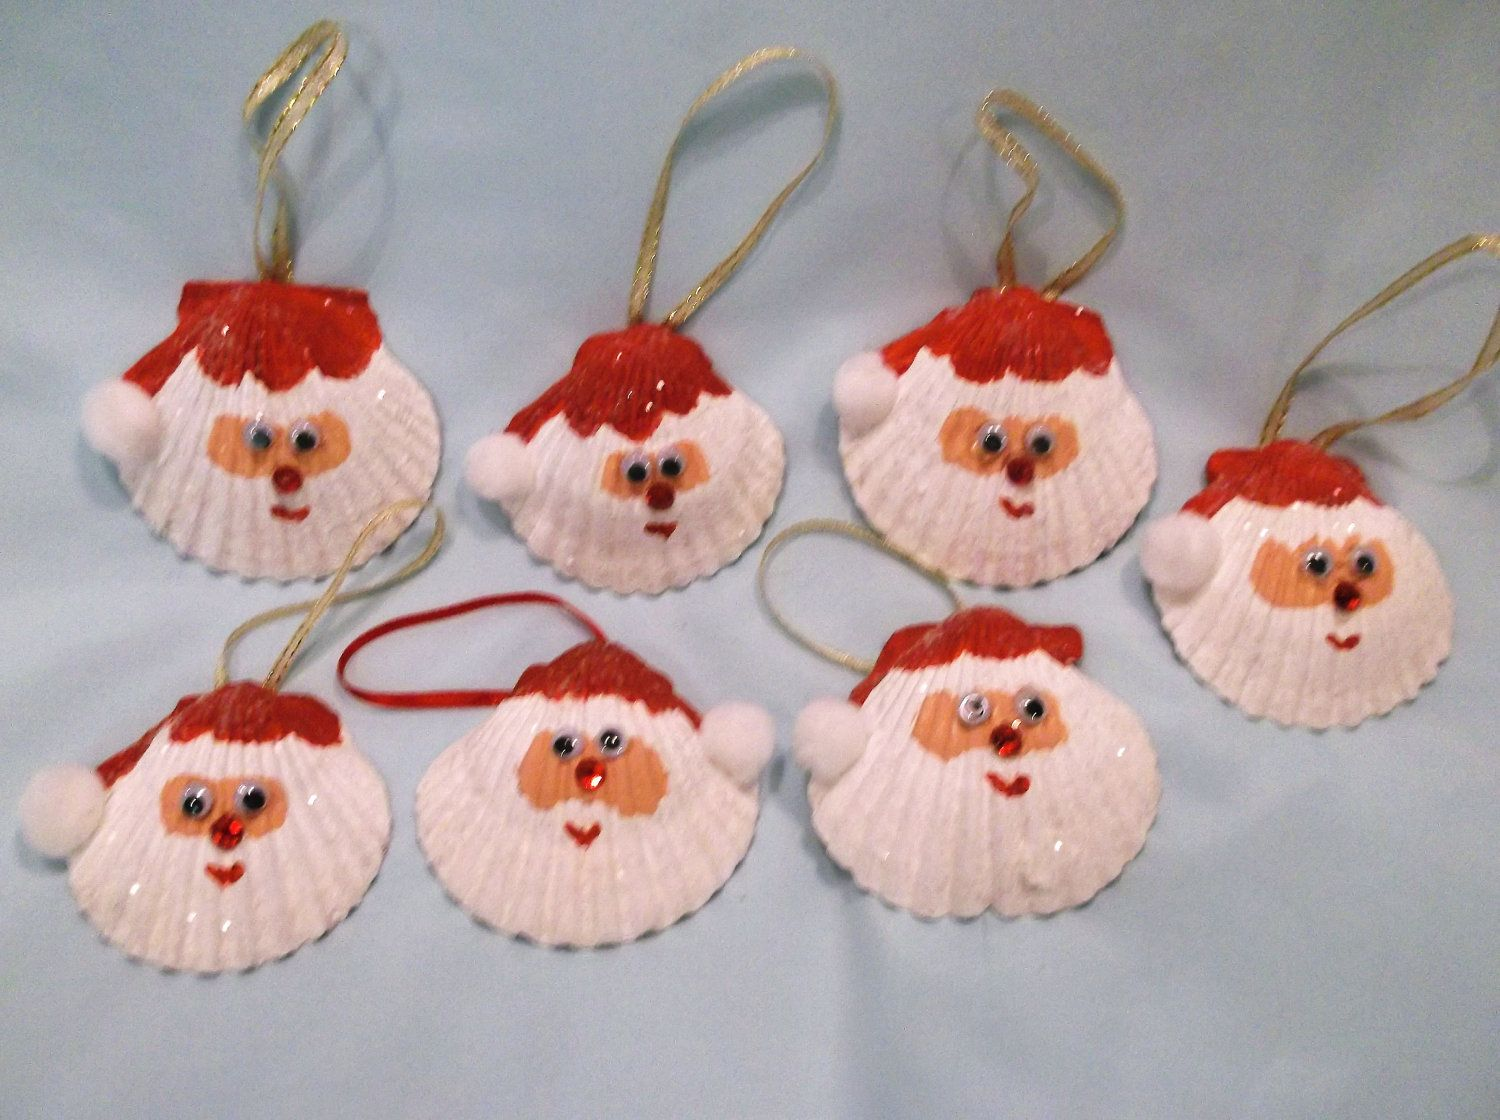 Seashell christmas ornaments - Cute Use Of All Those Seashells Brought Home From The Beach Crafts Pinterest Mom Christmas Ornament And Beaches